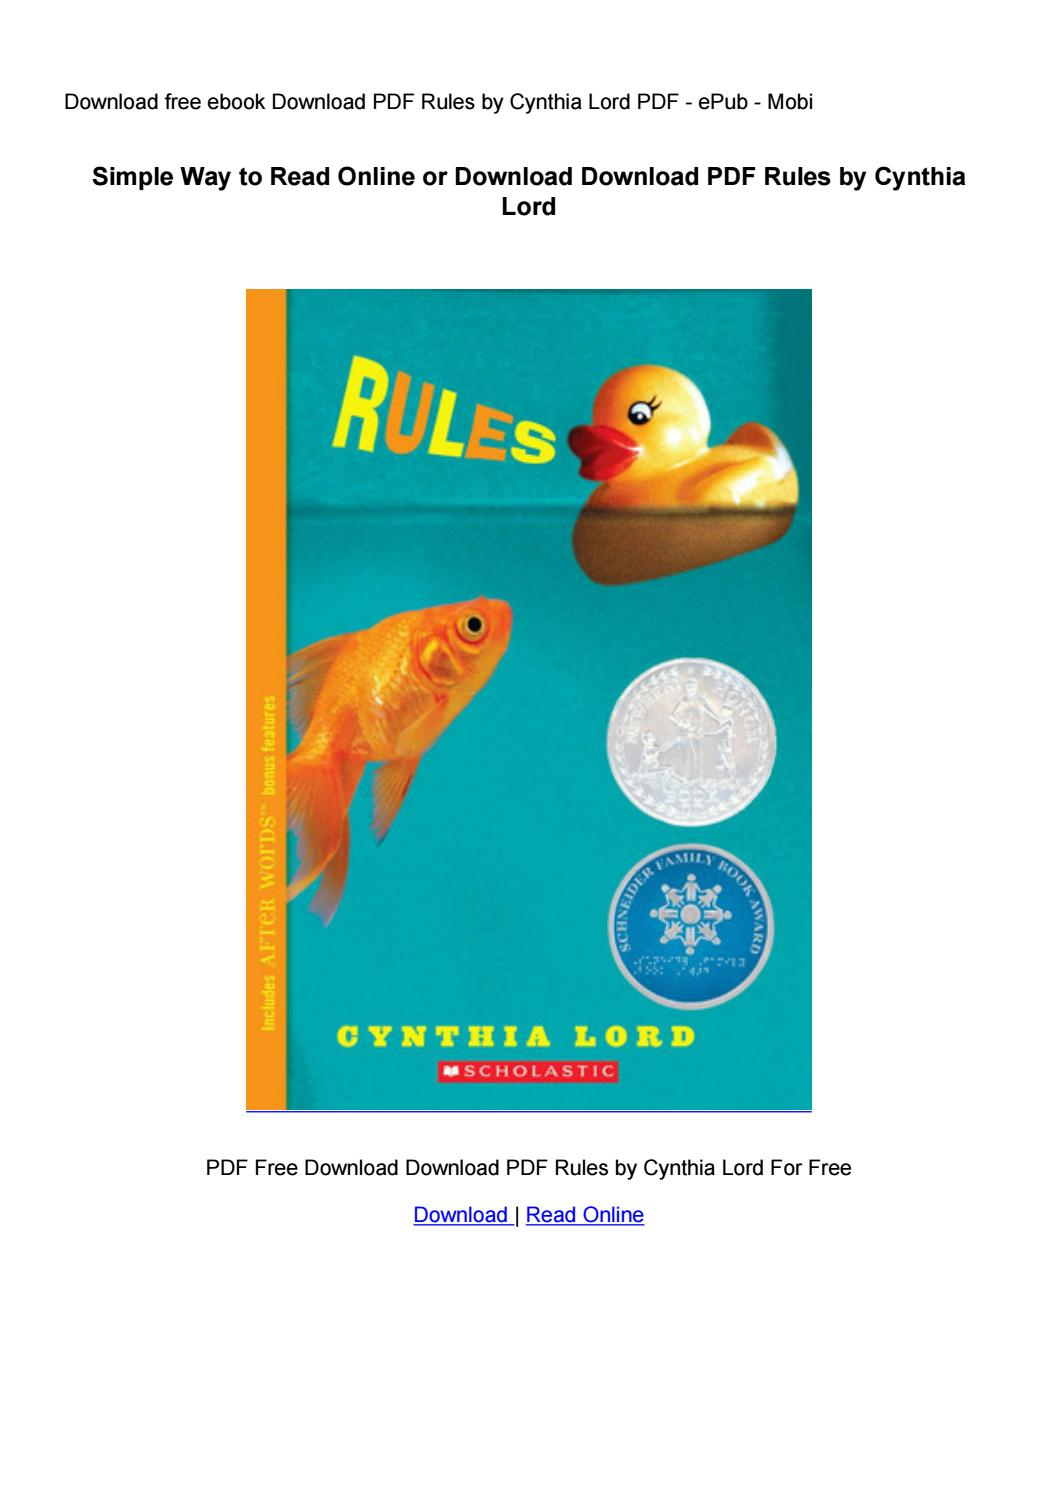 Rules By Cynthia Lord Pdf Download